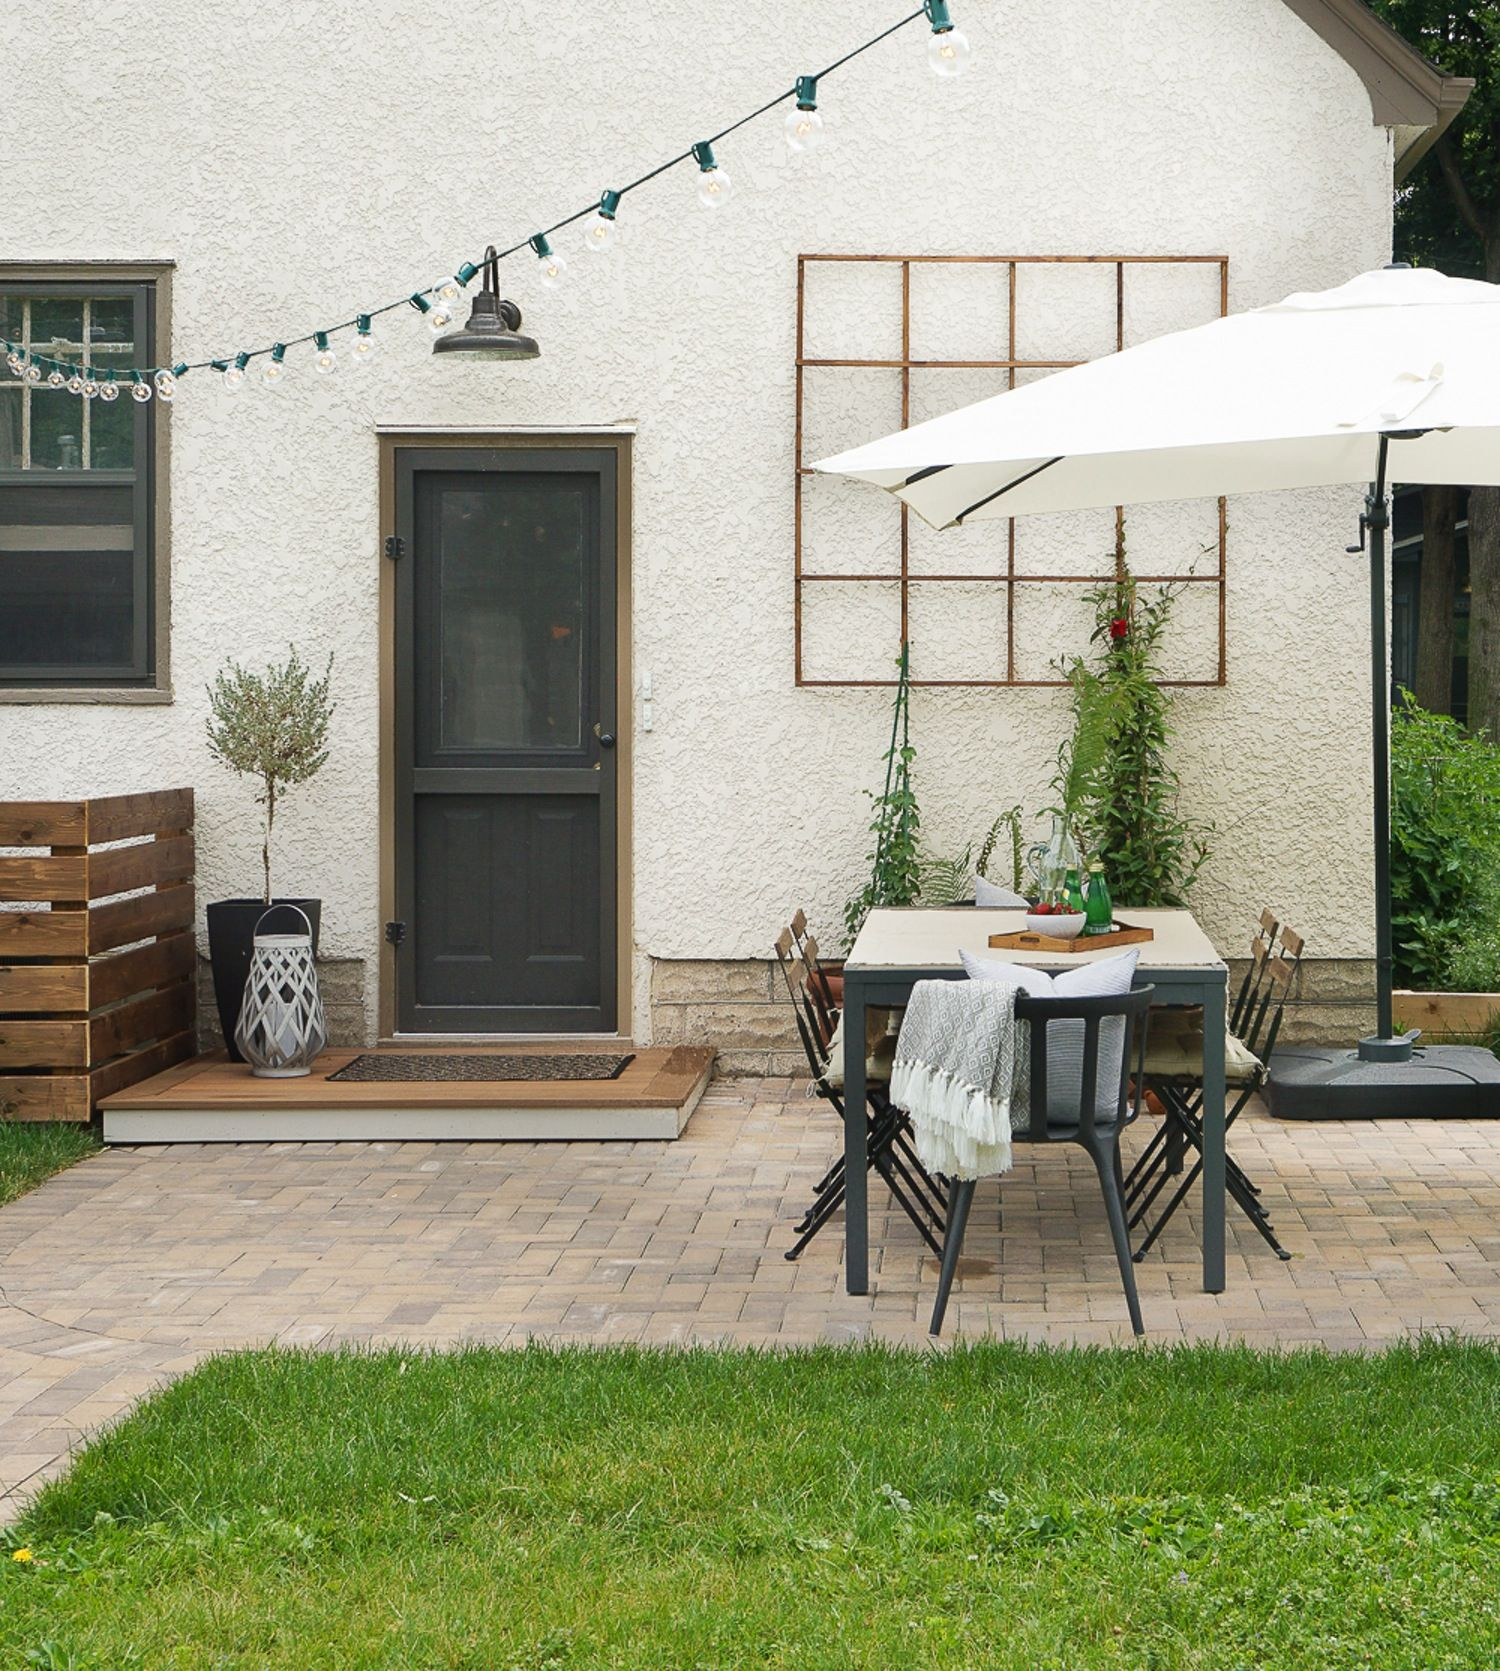 Cheap Apartments Outside Bricks: Doing It Right: How To Lay A Level Brick Paver Patio